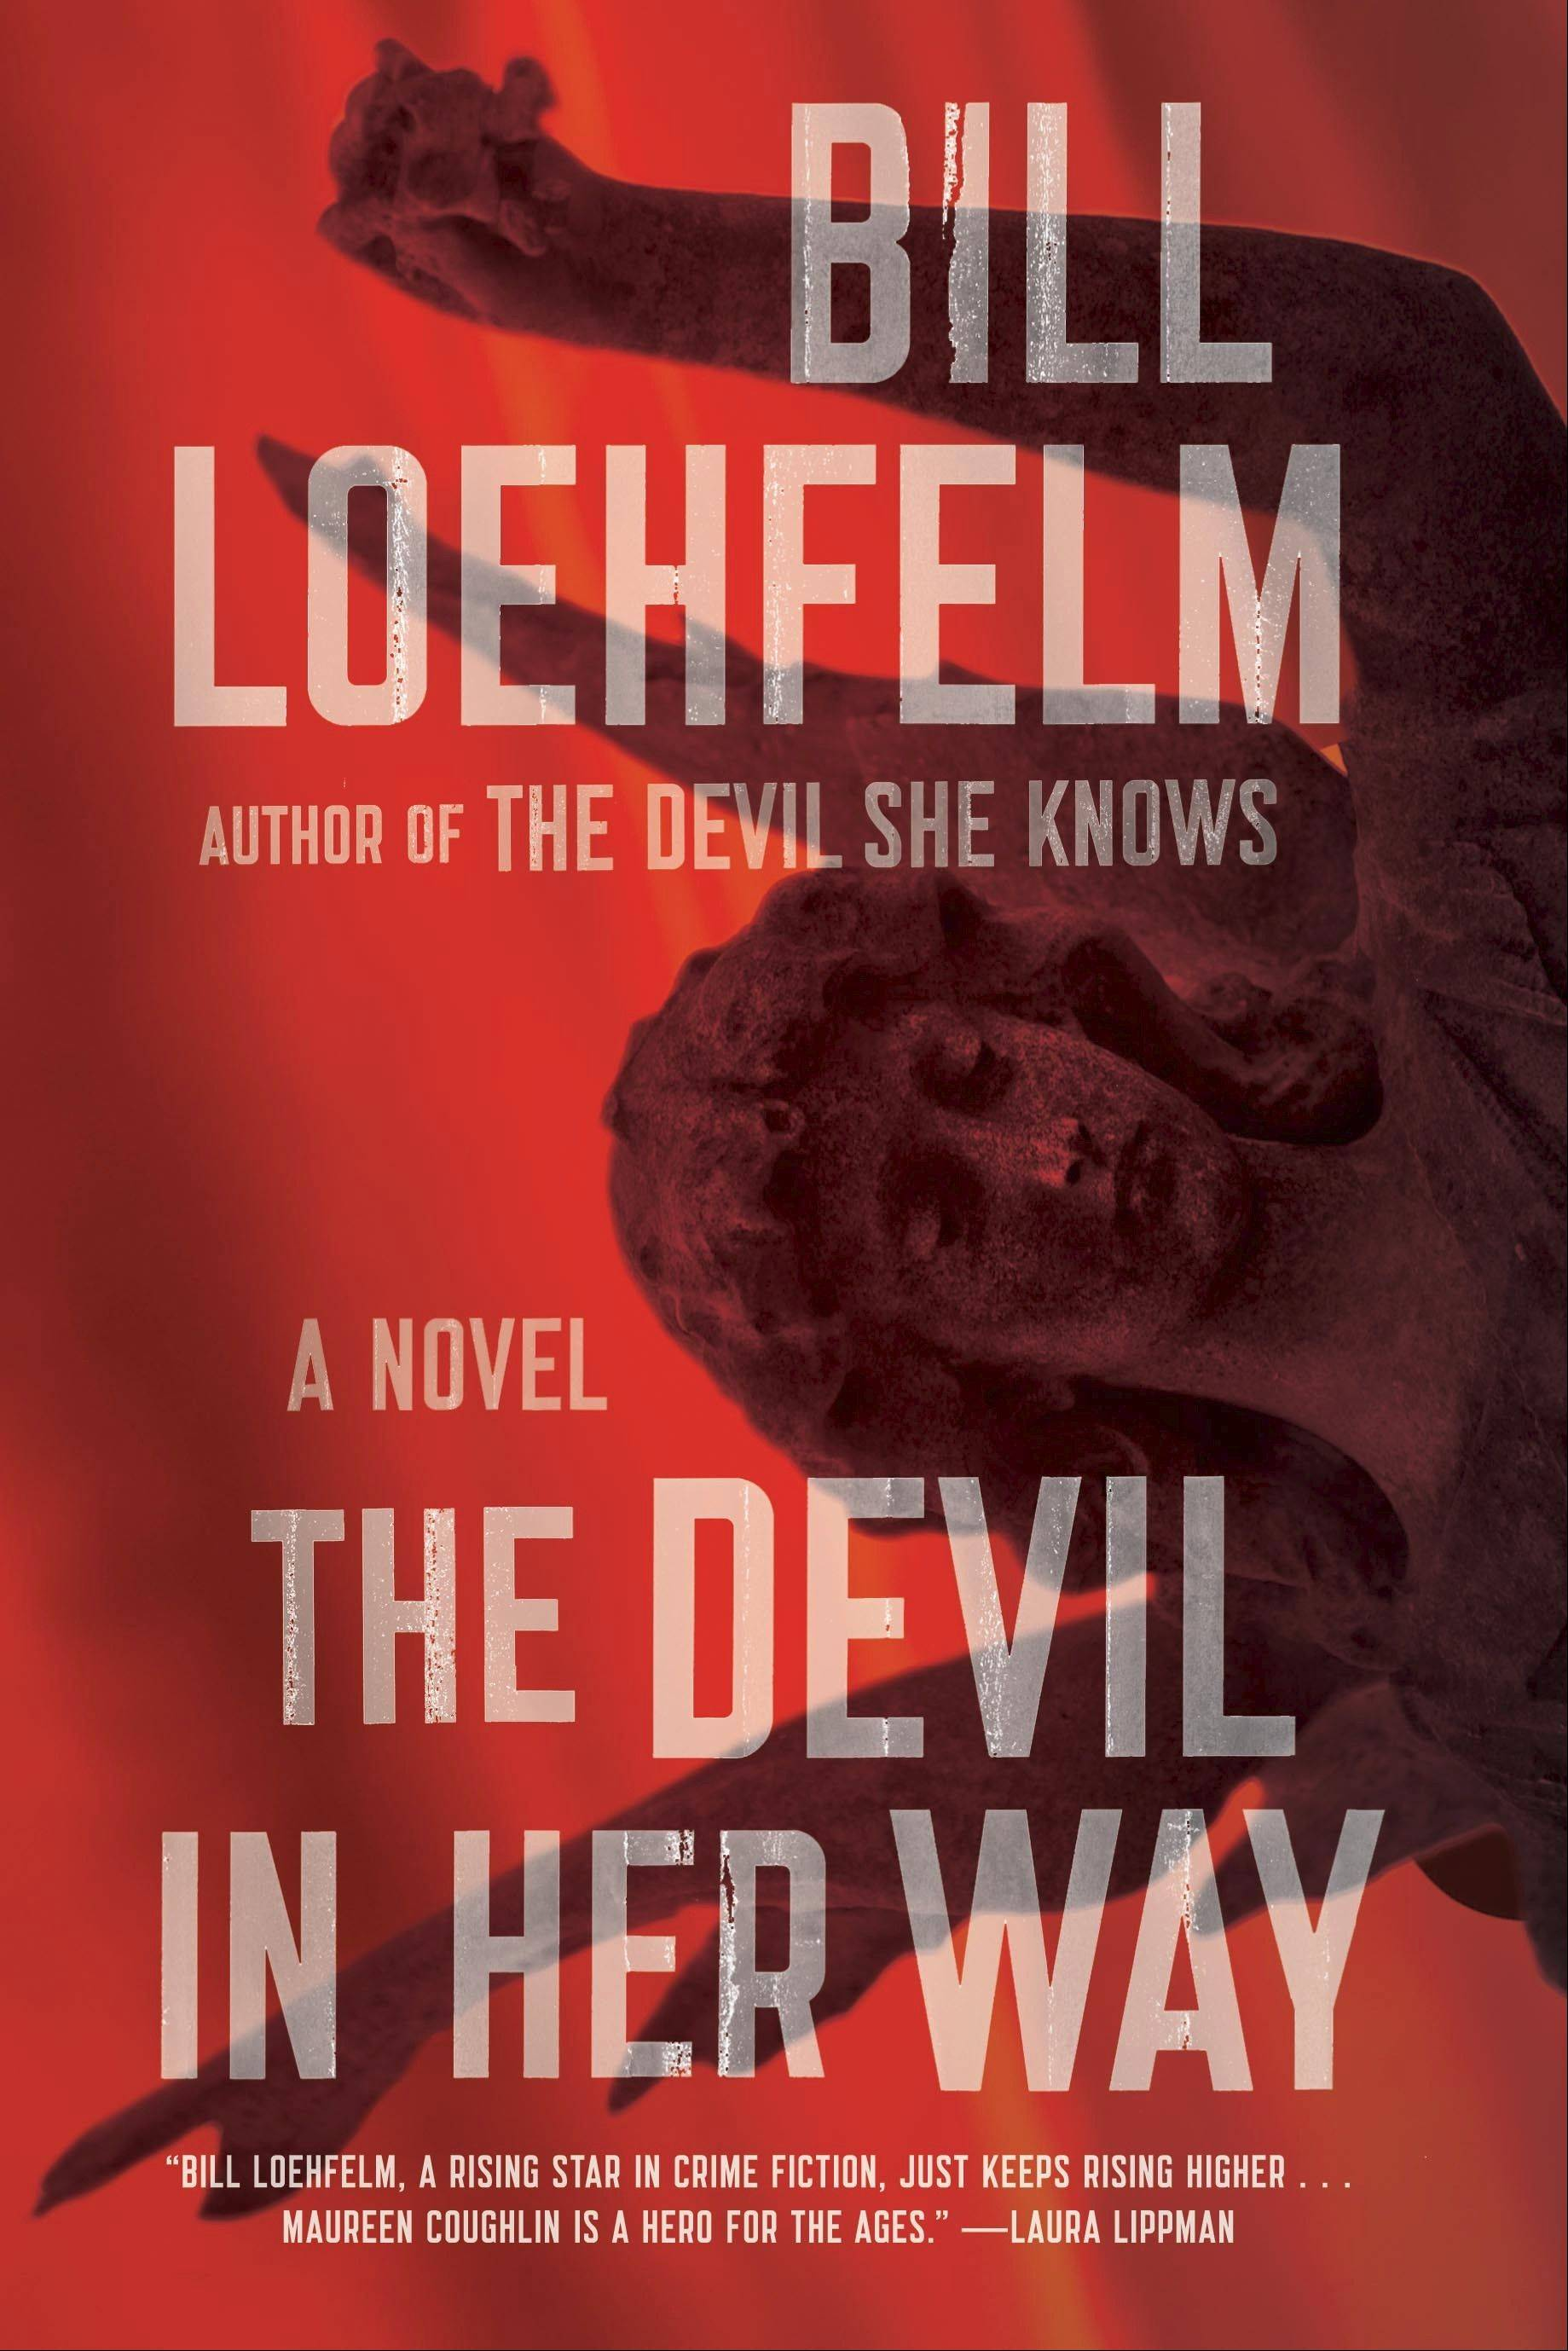 """The Devil in Her Way"" by Bill Loehfelm"